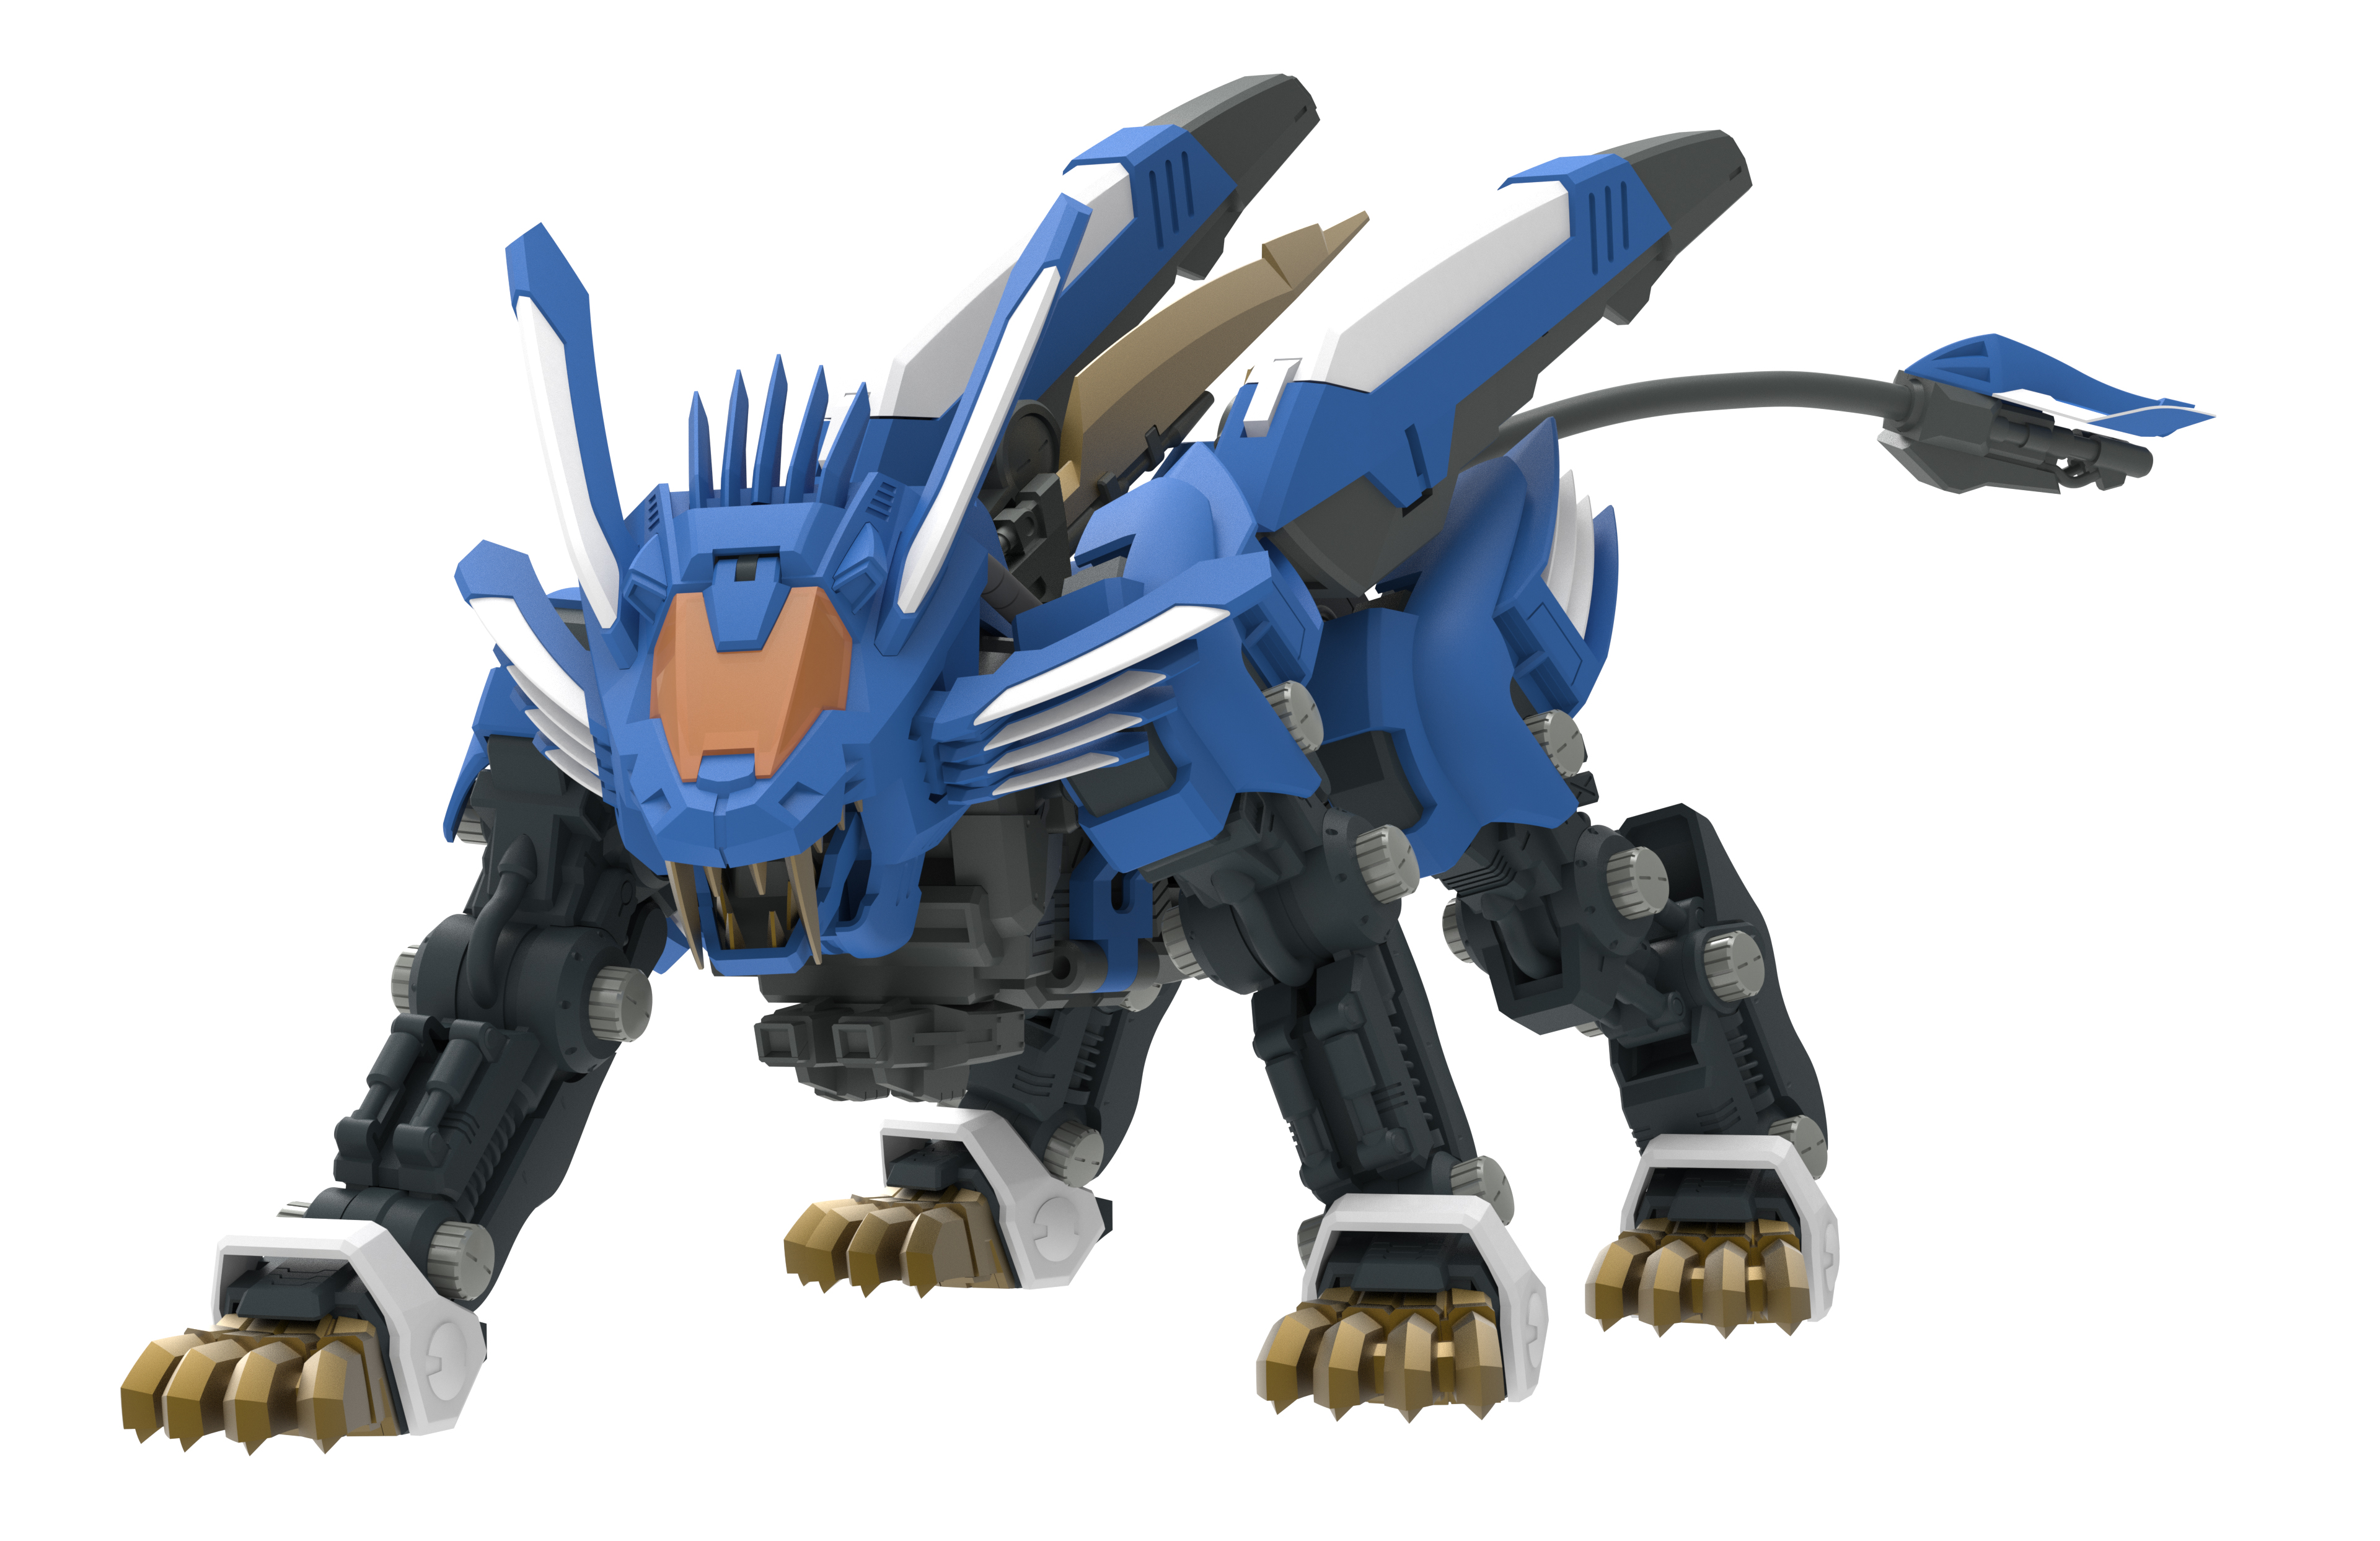 Zoids Action Figure Quot Za Blade Liger Ab Quot Will Be Released In October 2016 Manga Tokyo